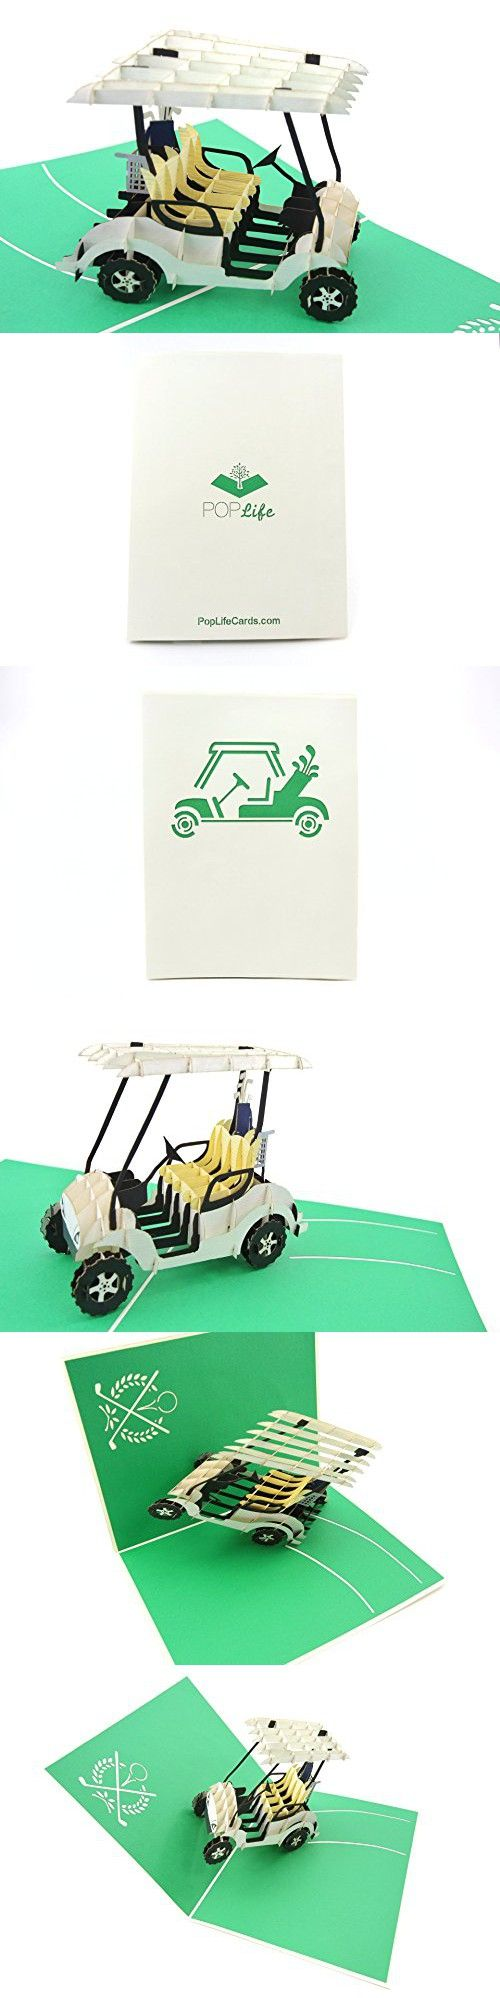 PopLife Golf Cart 3D Pop Up Card for All Occasions - Greeting Card for Golfers - Folds Flat, Perfect for Mailing - Birthday, Retirement, Over-The-Hill, Fathers Day - Best Dads Golfing Gift